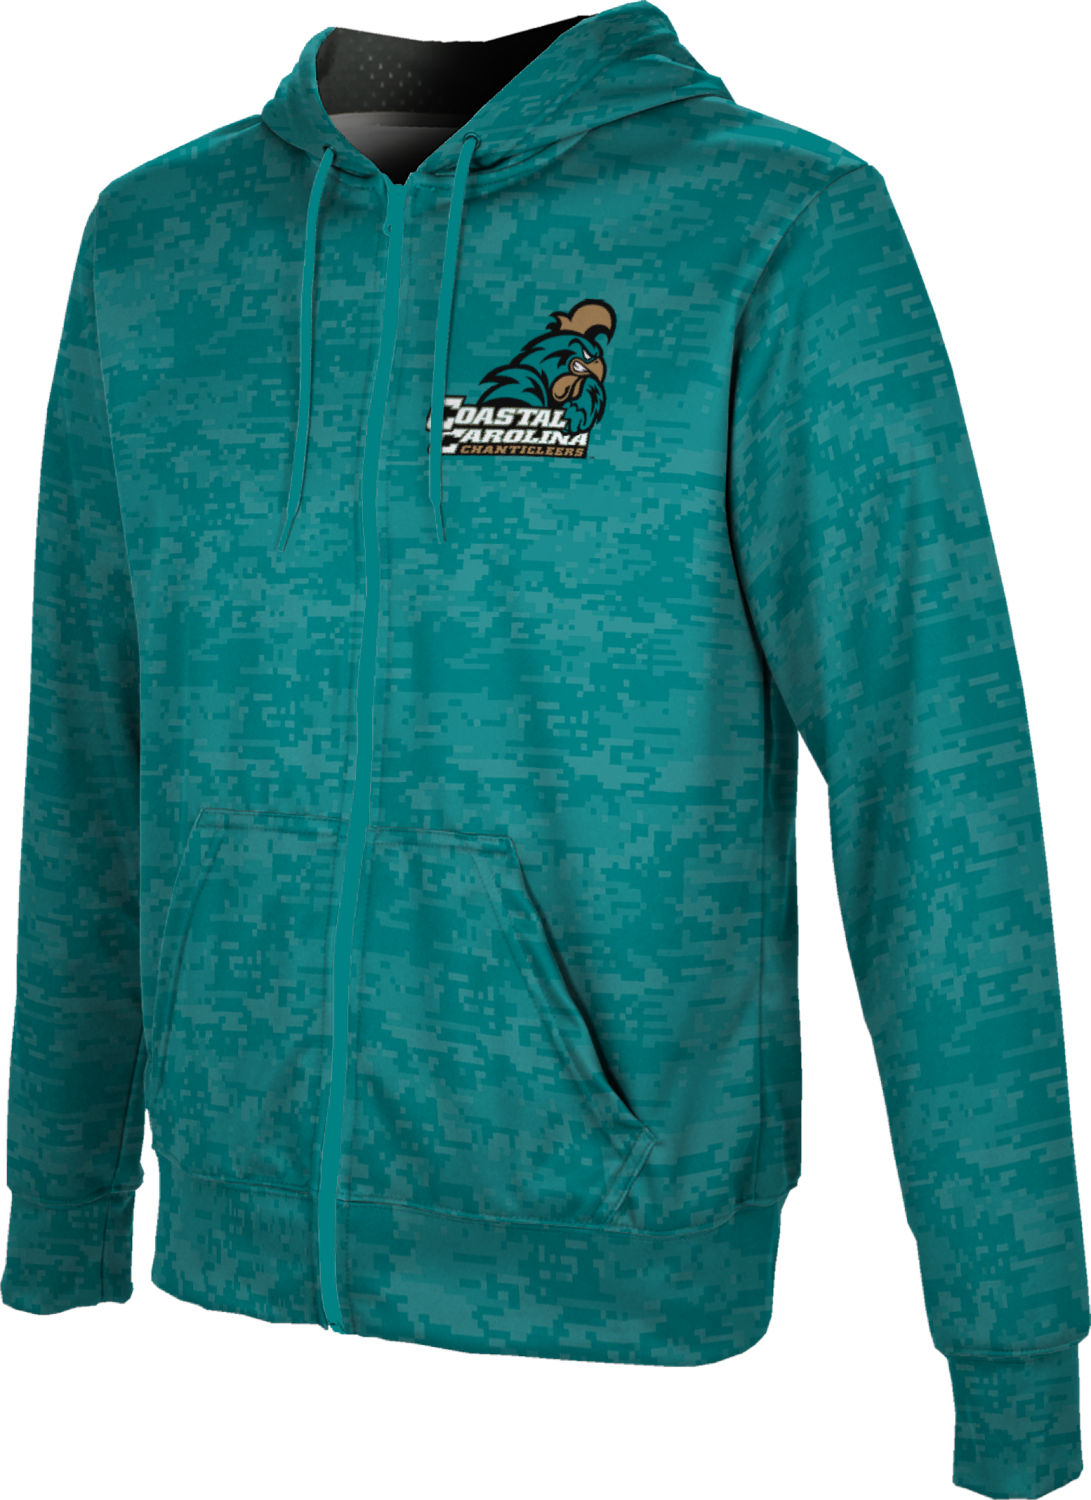 ProSphere Boys' Coastal Carolina University Digital Fullzip Hoodie